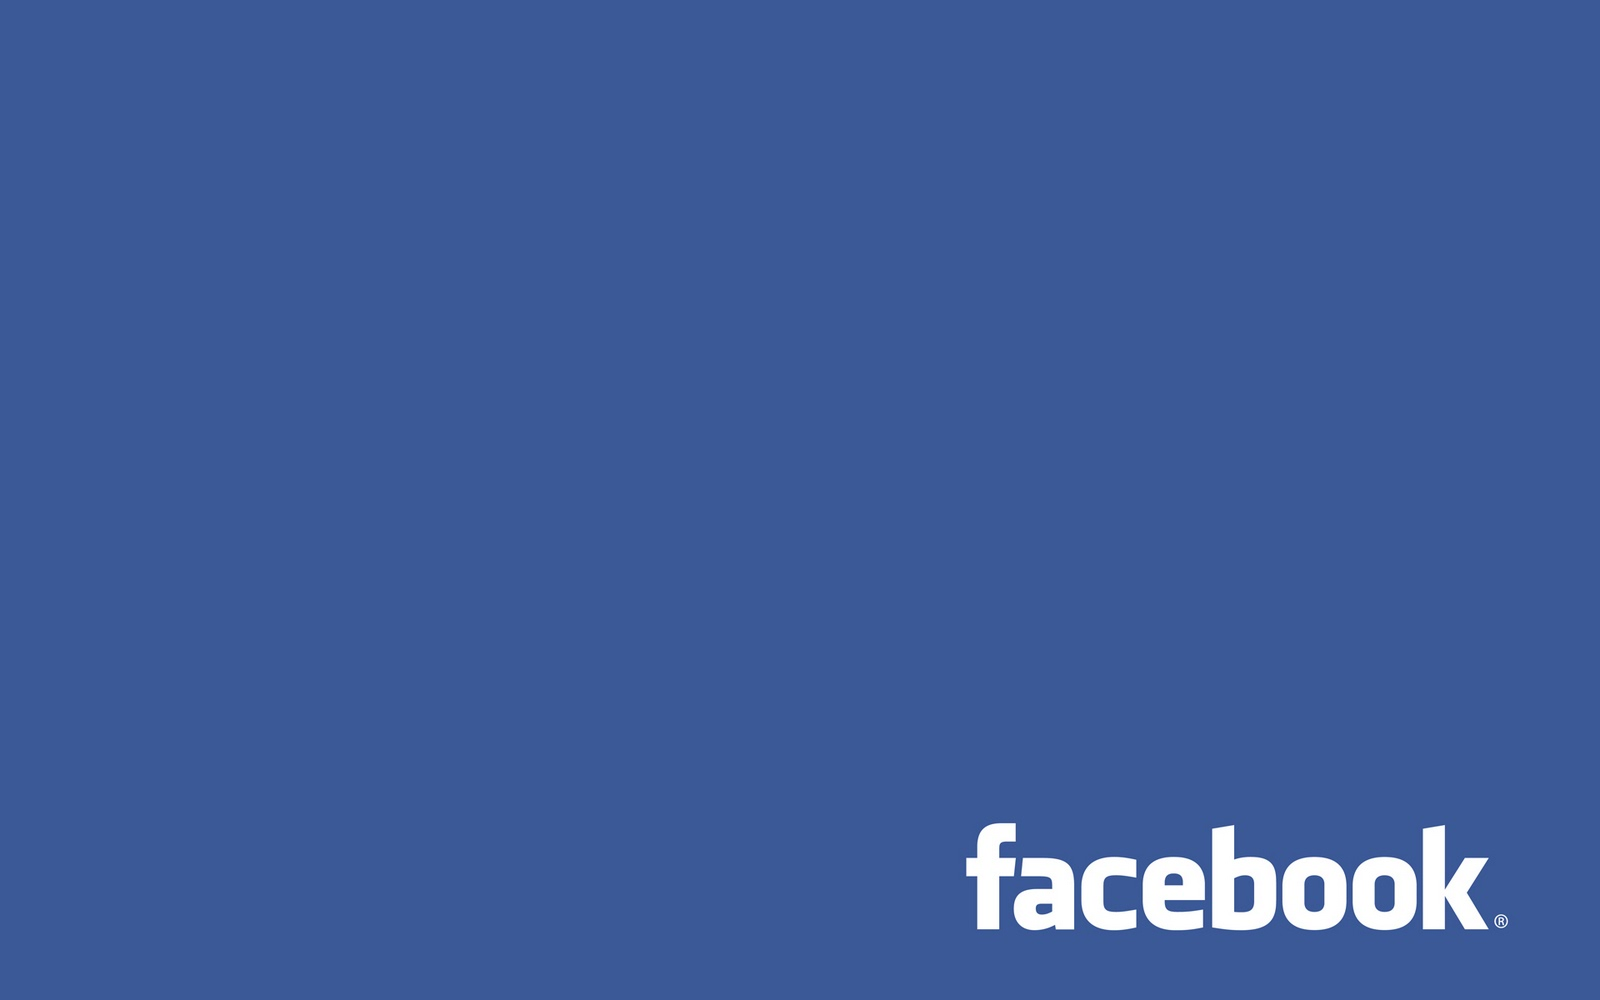 facebook logo wallpaper 62722